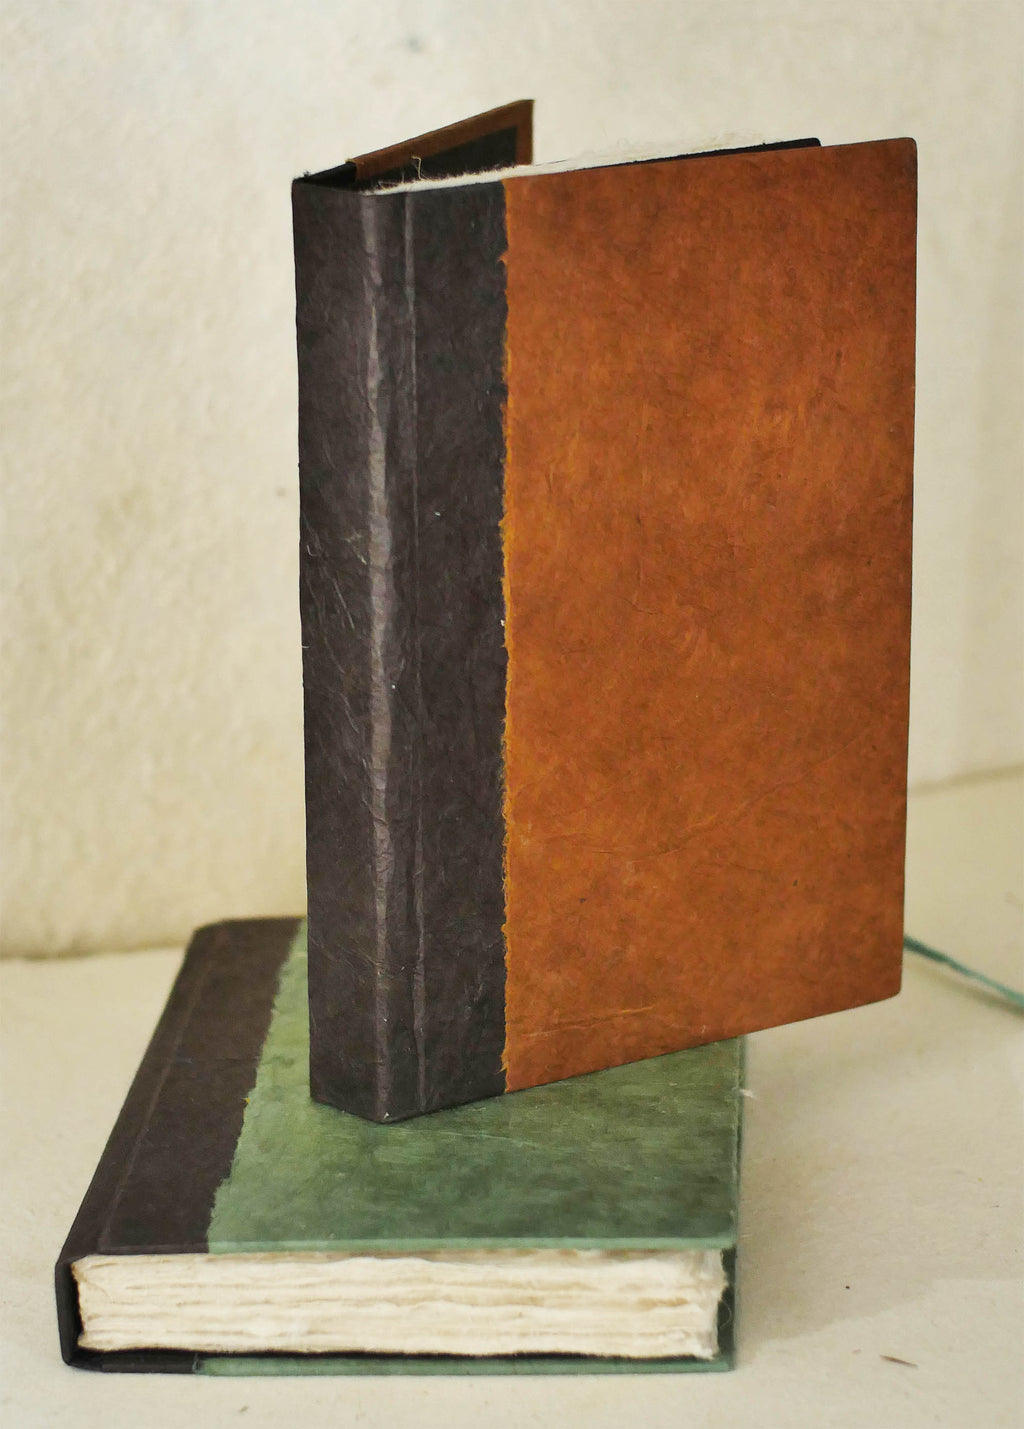 6 x 9 Hard Cover Sagarmtha Journal - deckle edge lokta pages